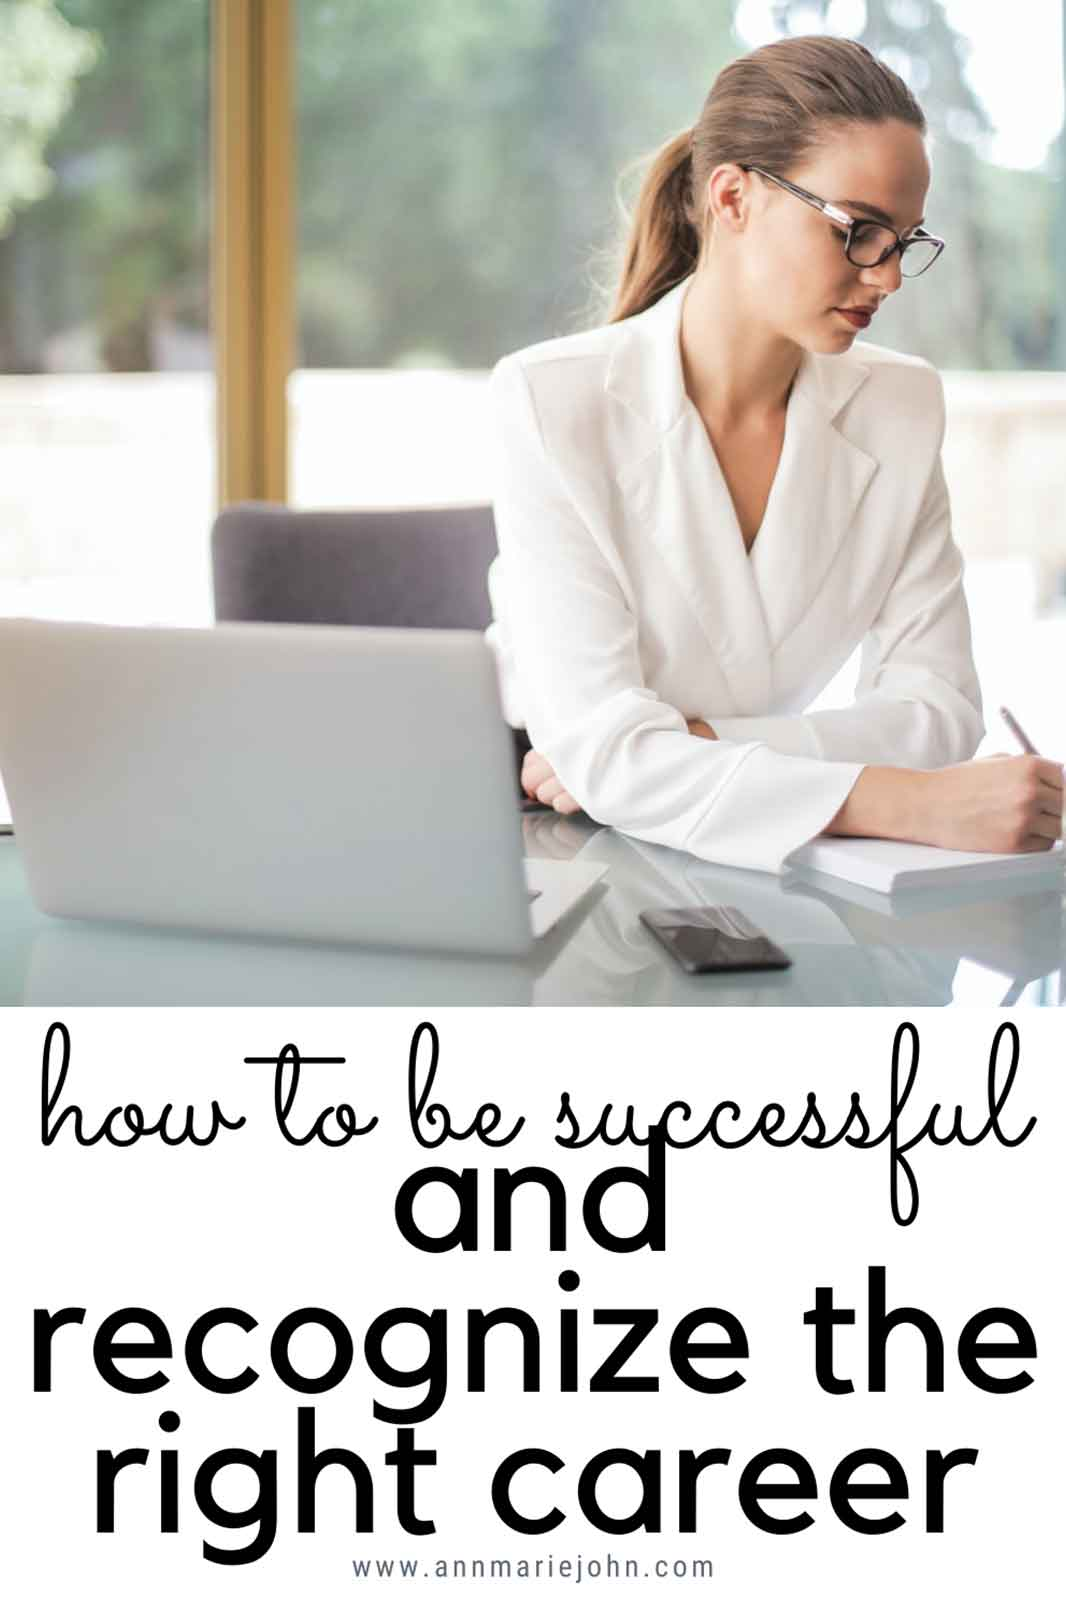 How To Be Successful And Recognize The Right Career